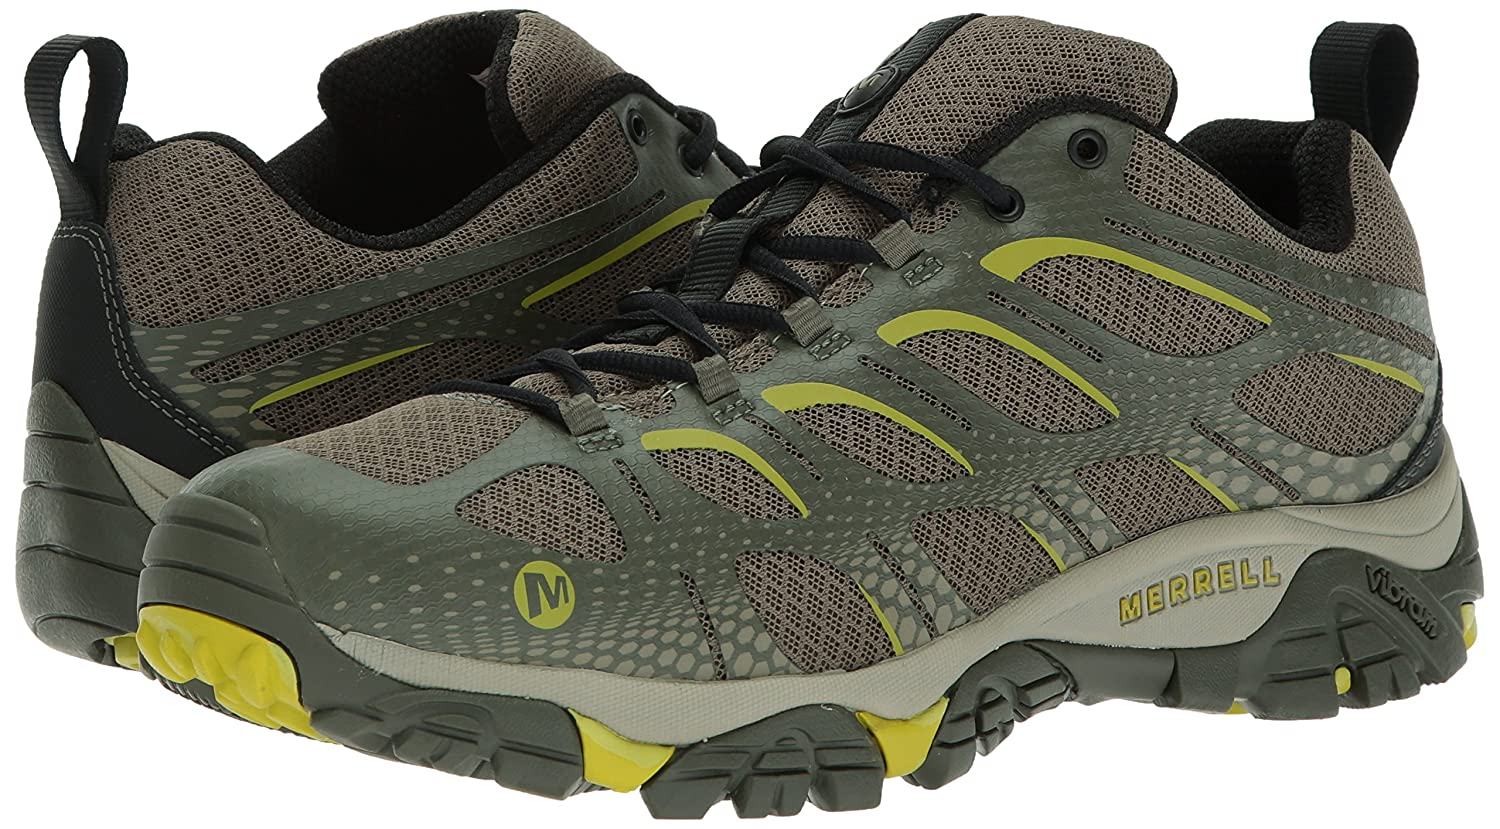 Merrell Merrell Merrell Men's Moab Edge Hiking schuhe, Dusty Olive, 9 M US 22782d